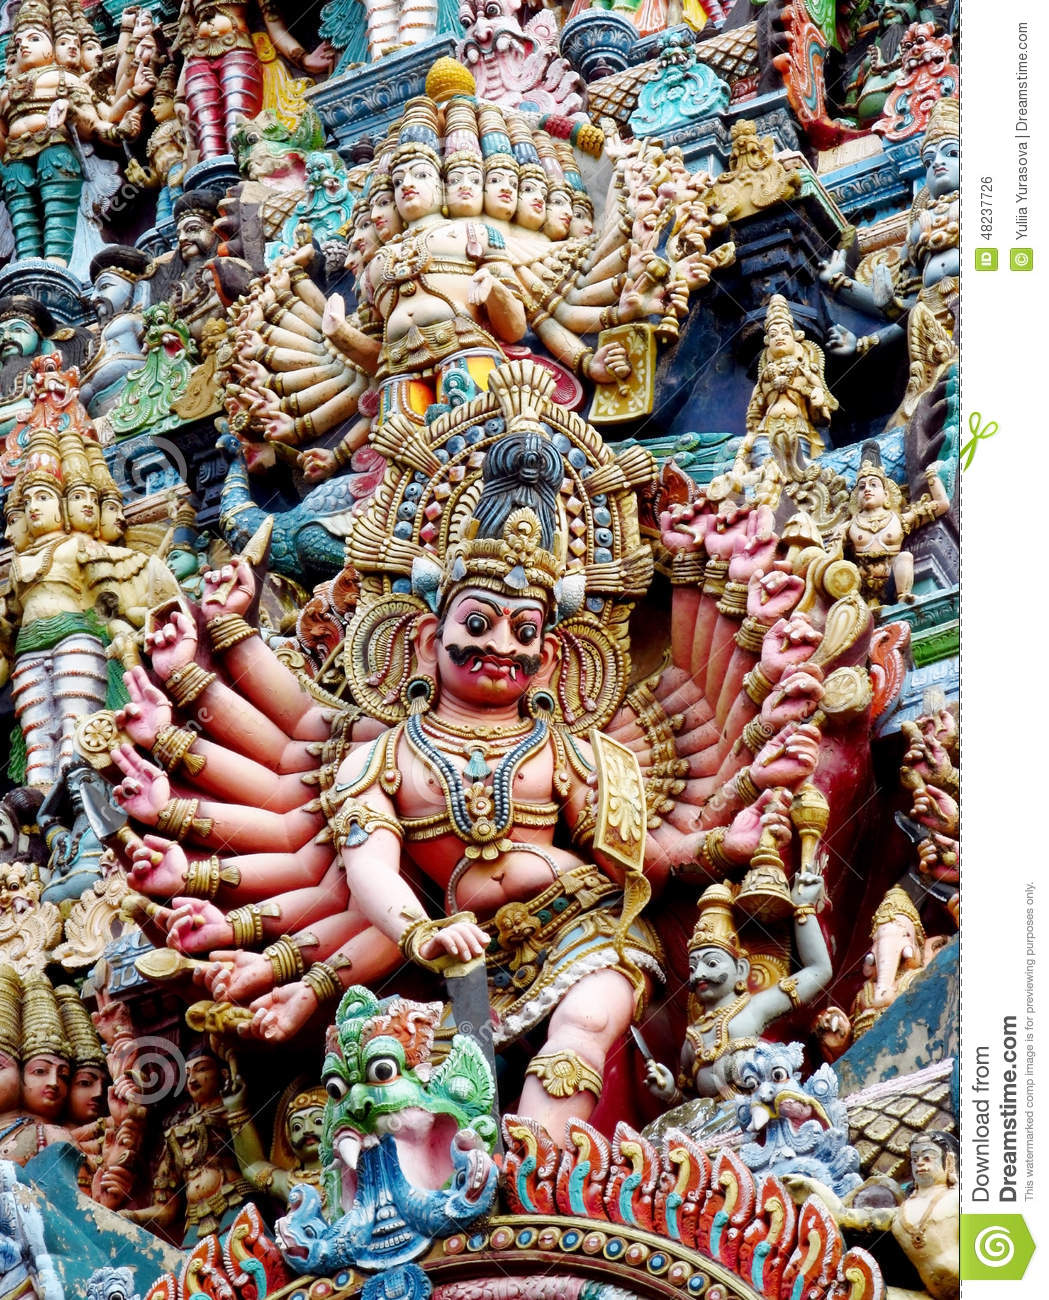 Colorful hindu statues on temple walls